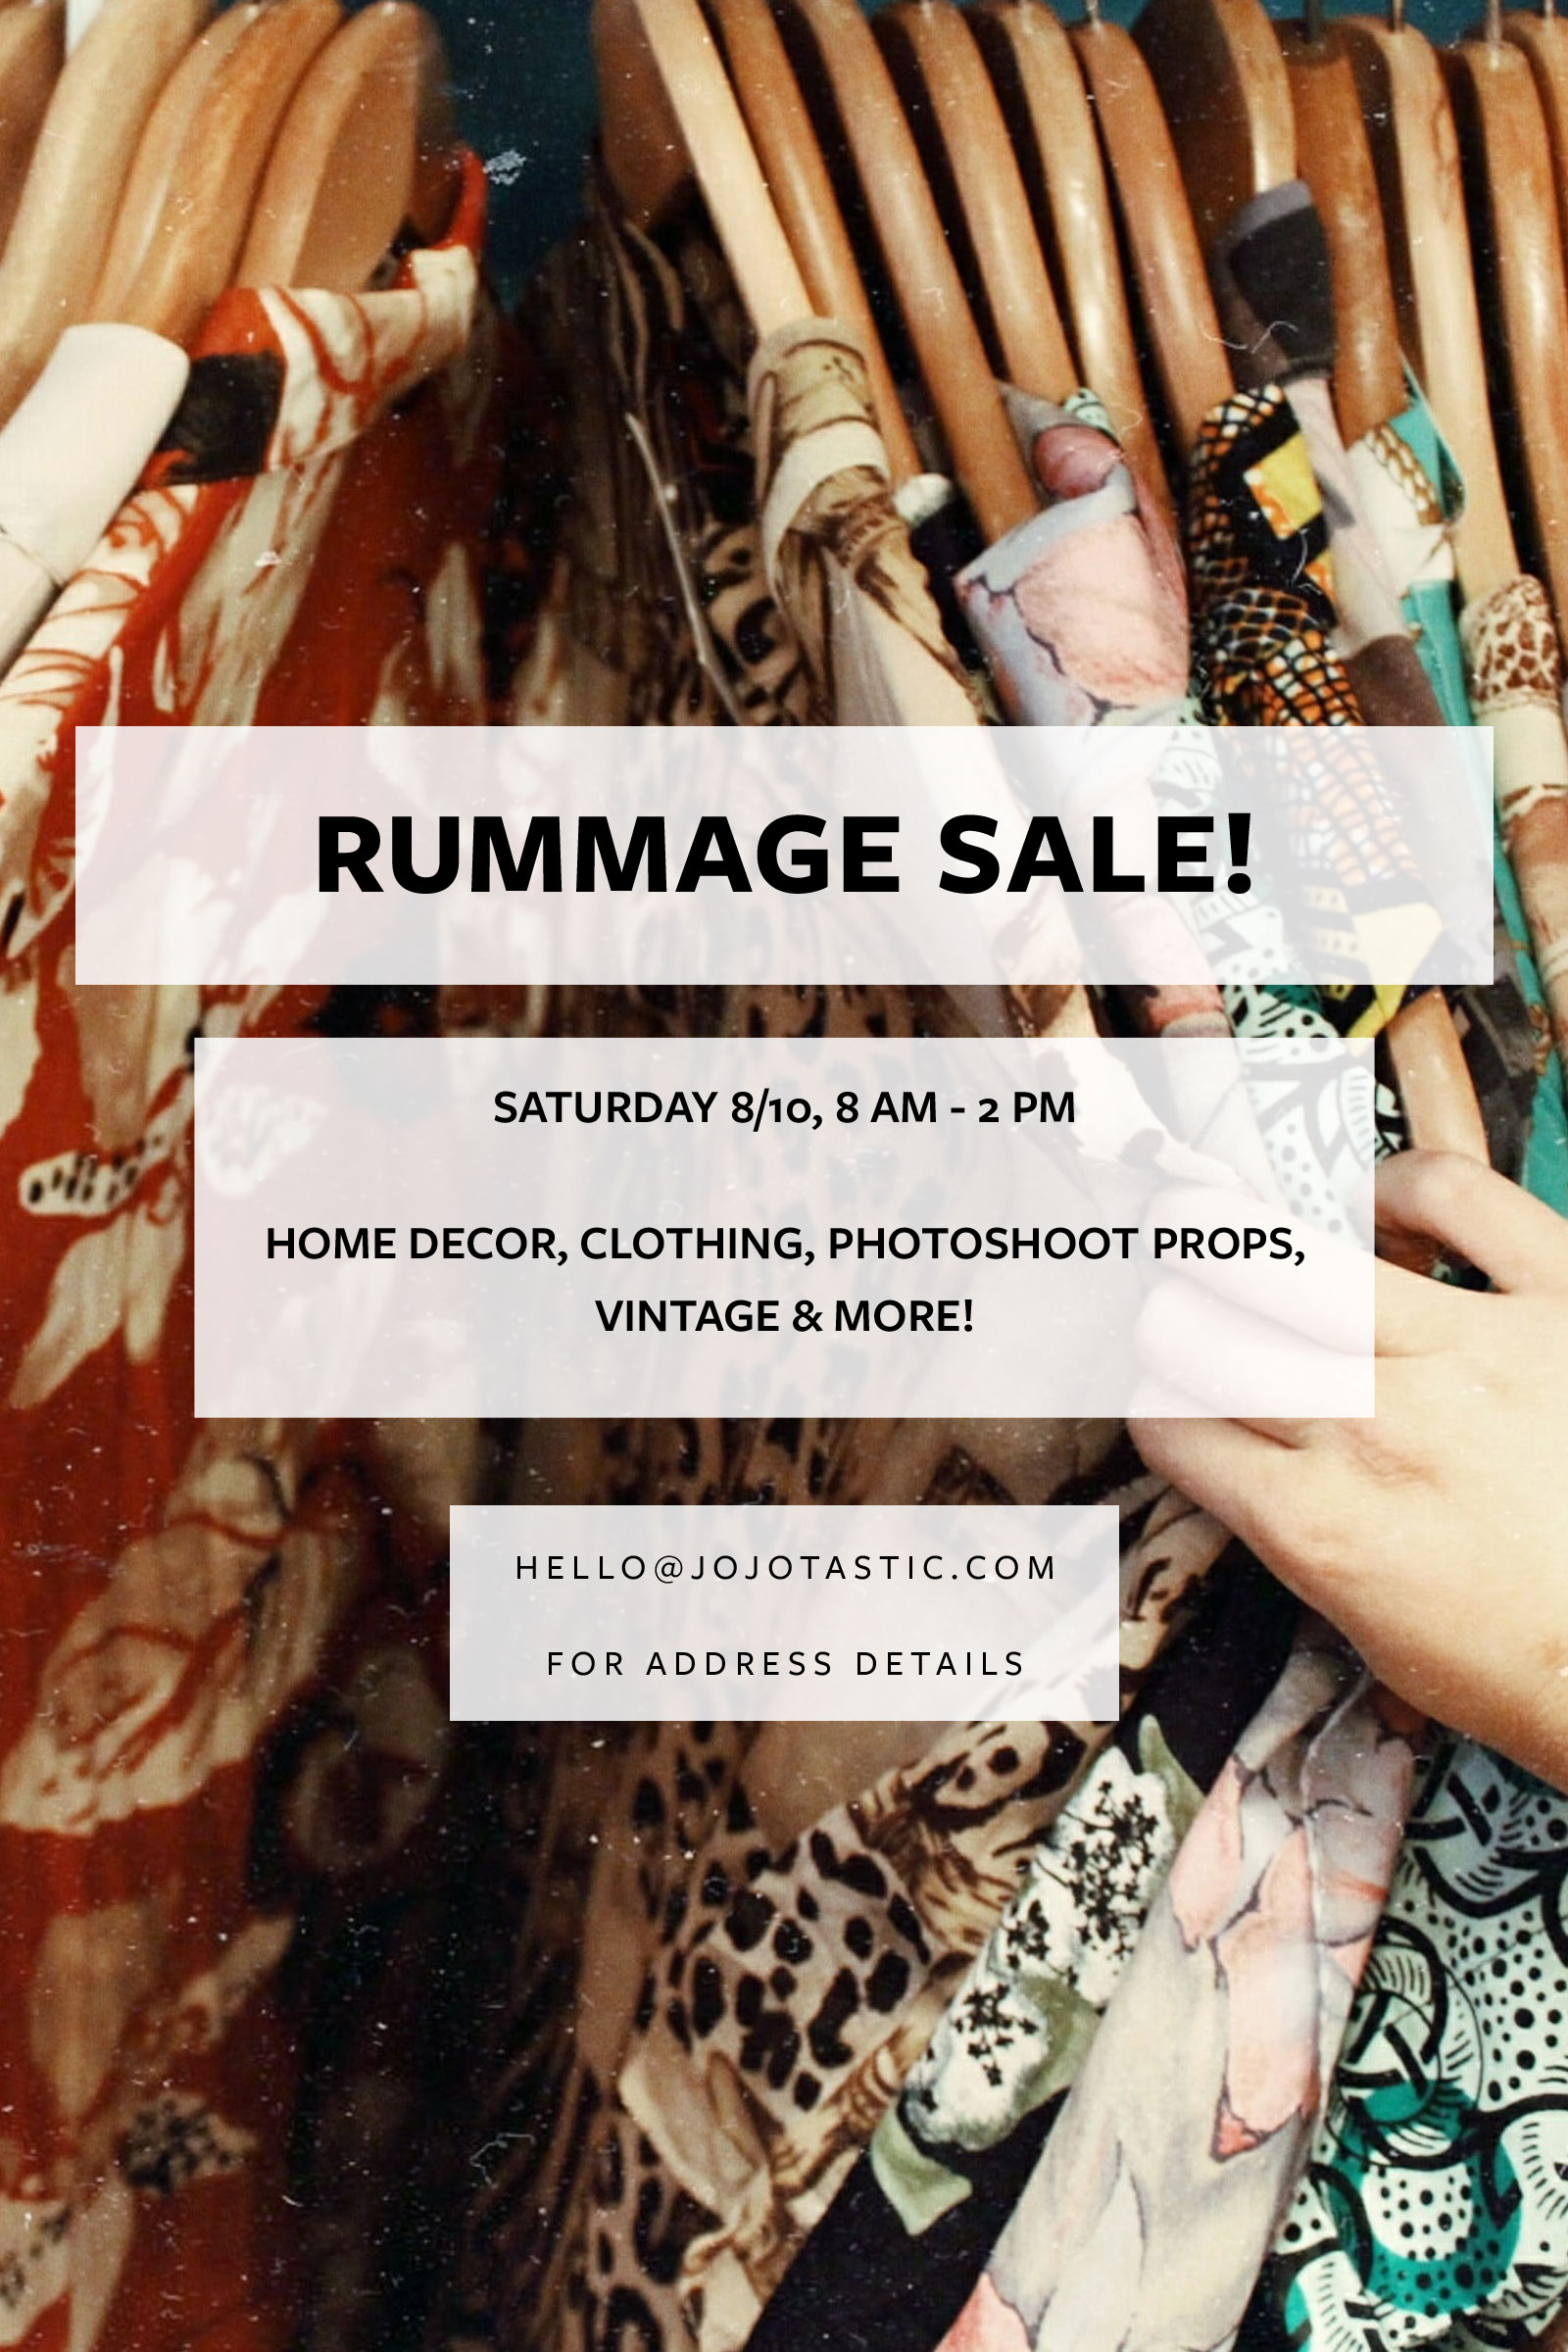 Seattle rummage sale! Come scoop up amazing deals from a photographer and prop stylist in Ballard. Home decor, clothing (some designer), photoshoot props, photography equipment, vintage, and more.